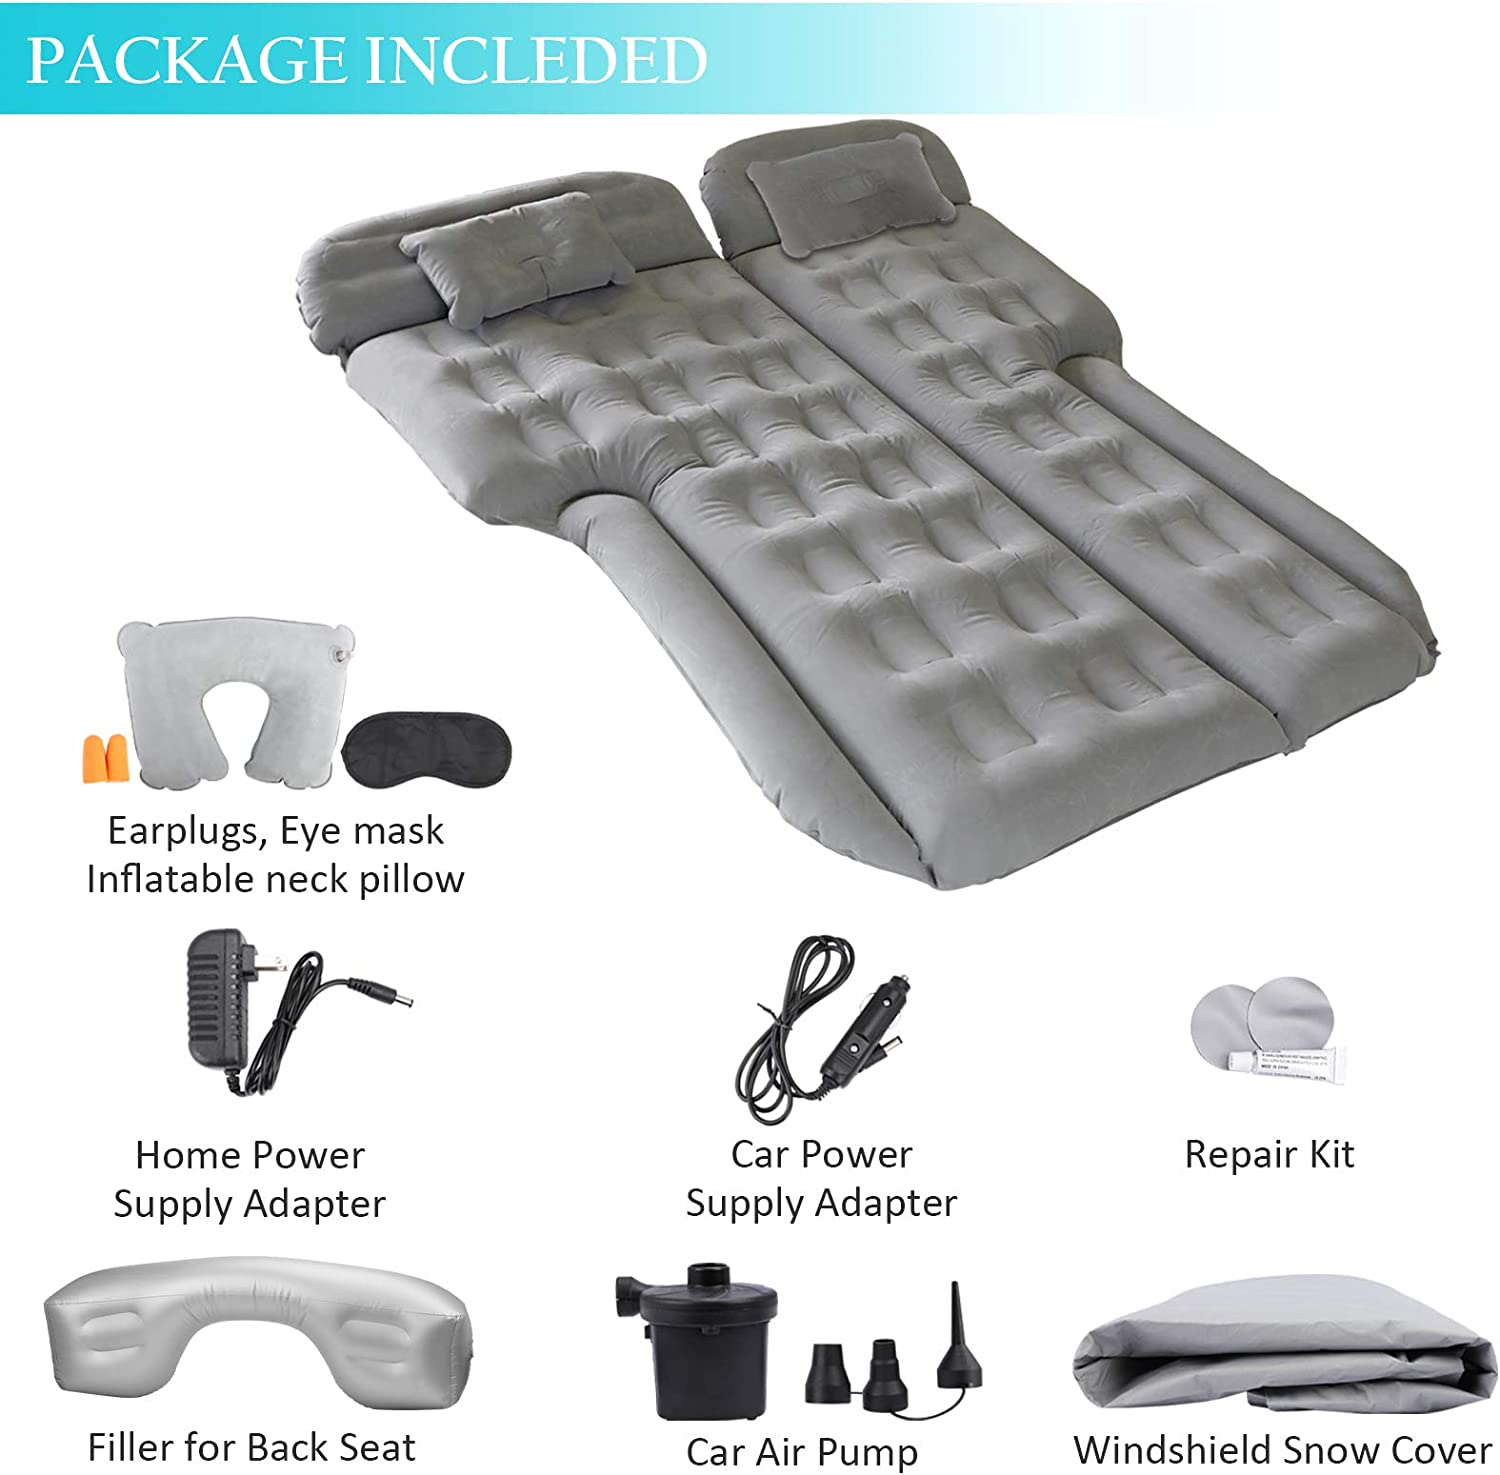 Upgraded Version Fits SUV Qukpa Air Mattress Inflatable Car Back Seat Travel Camping Bed Portable Flocking Tent Cushion with Electric Air Pump Truck etc General Car Model RV